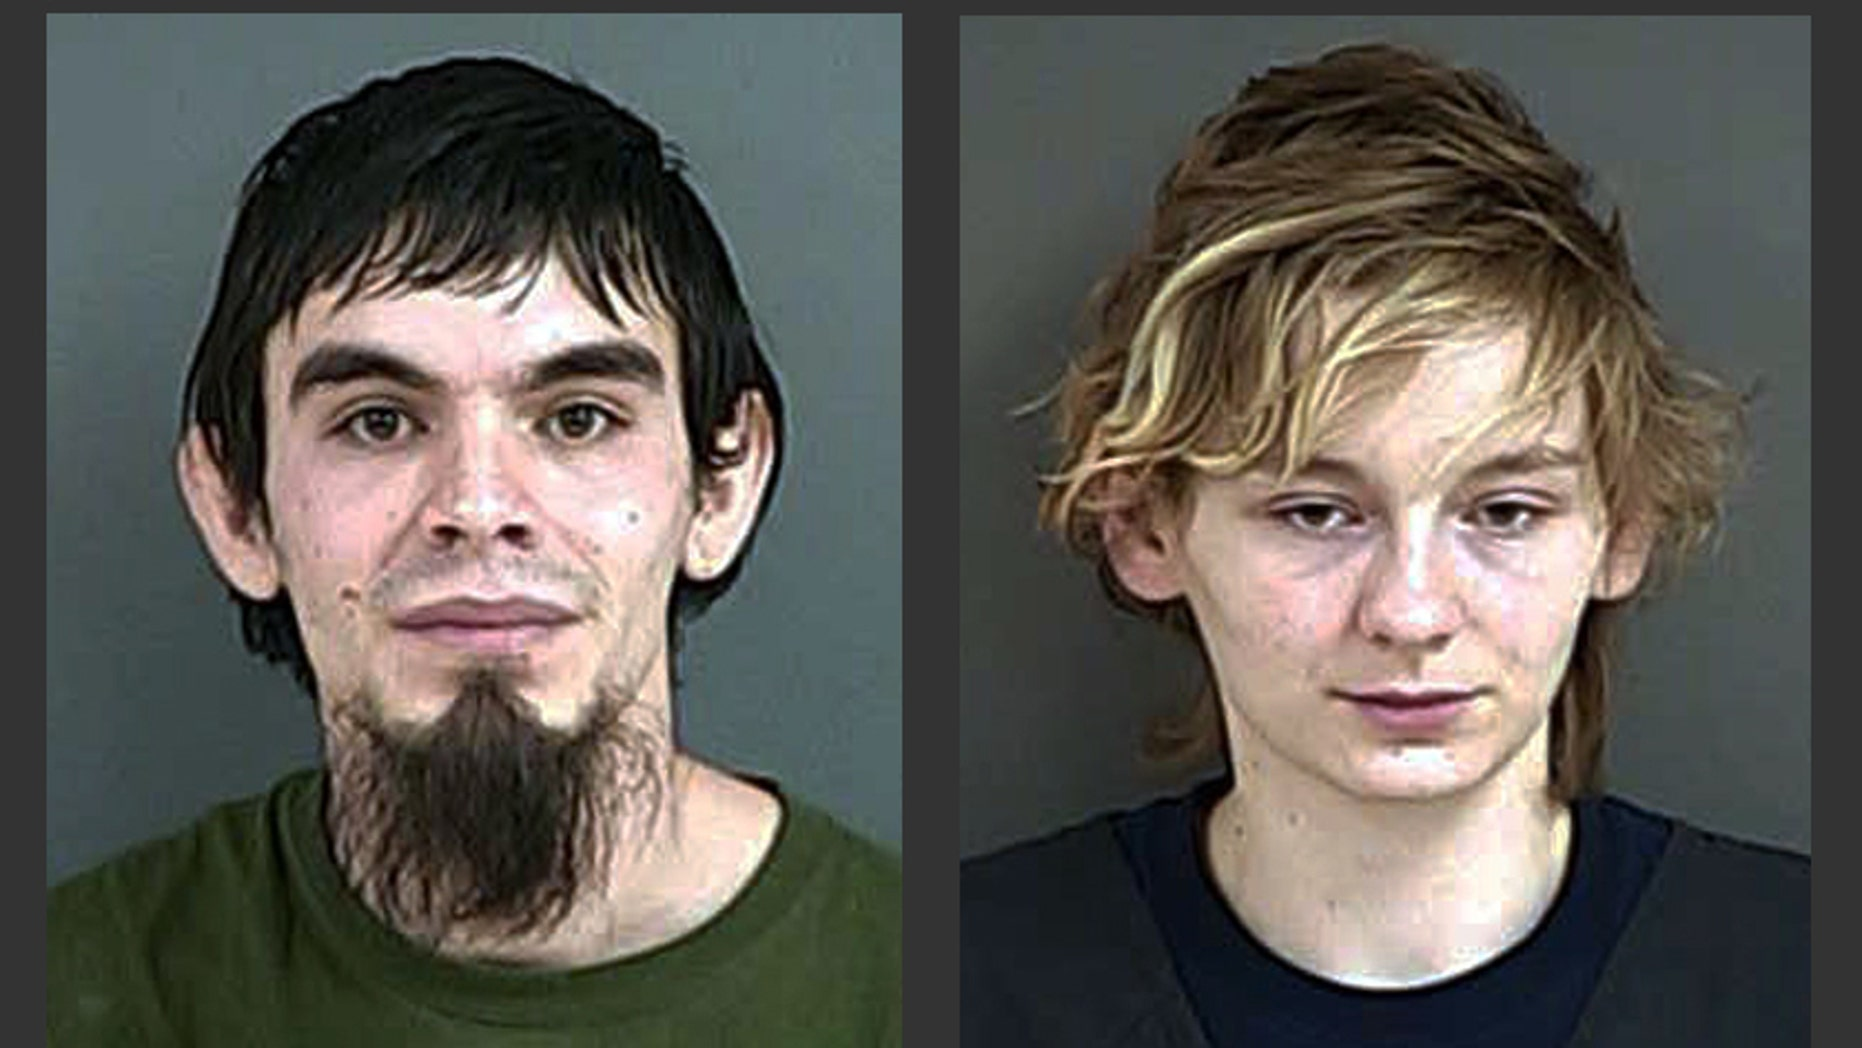 This Tuesday, Feb. 17, 2015 booking photo provided by the Douglas County Sheriff's Office shows Stephen Williams Jr., 26, of Glendale, Ore., and Amanda Hancock. Williams and Hancock were arrested Tuesday at their home in Glendale, Ore., on charges of murder by abuse after their seven-week-old baby boy, Data Hancock, was determined to have died of starvation. (AP Photo/Douglas County Sheriff's Office)